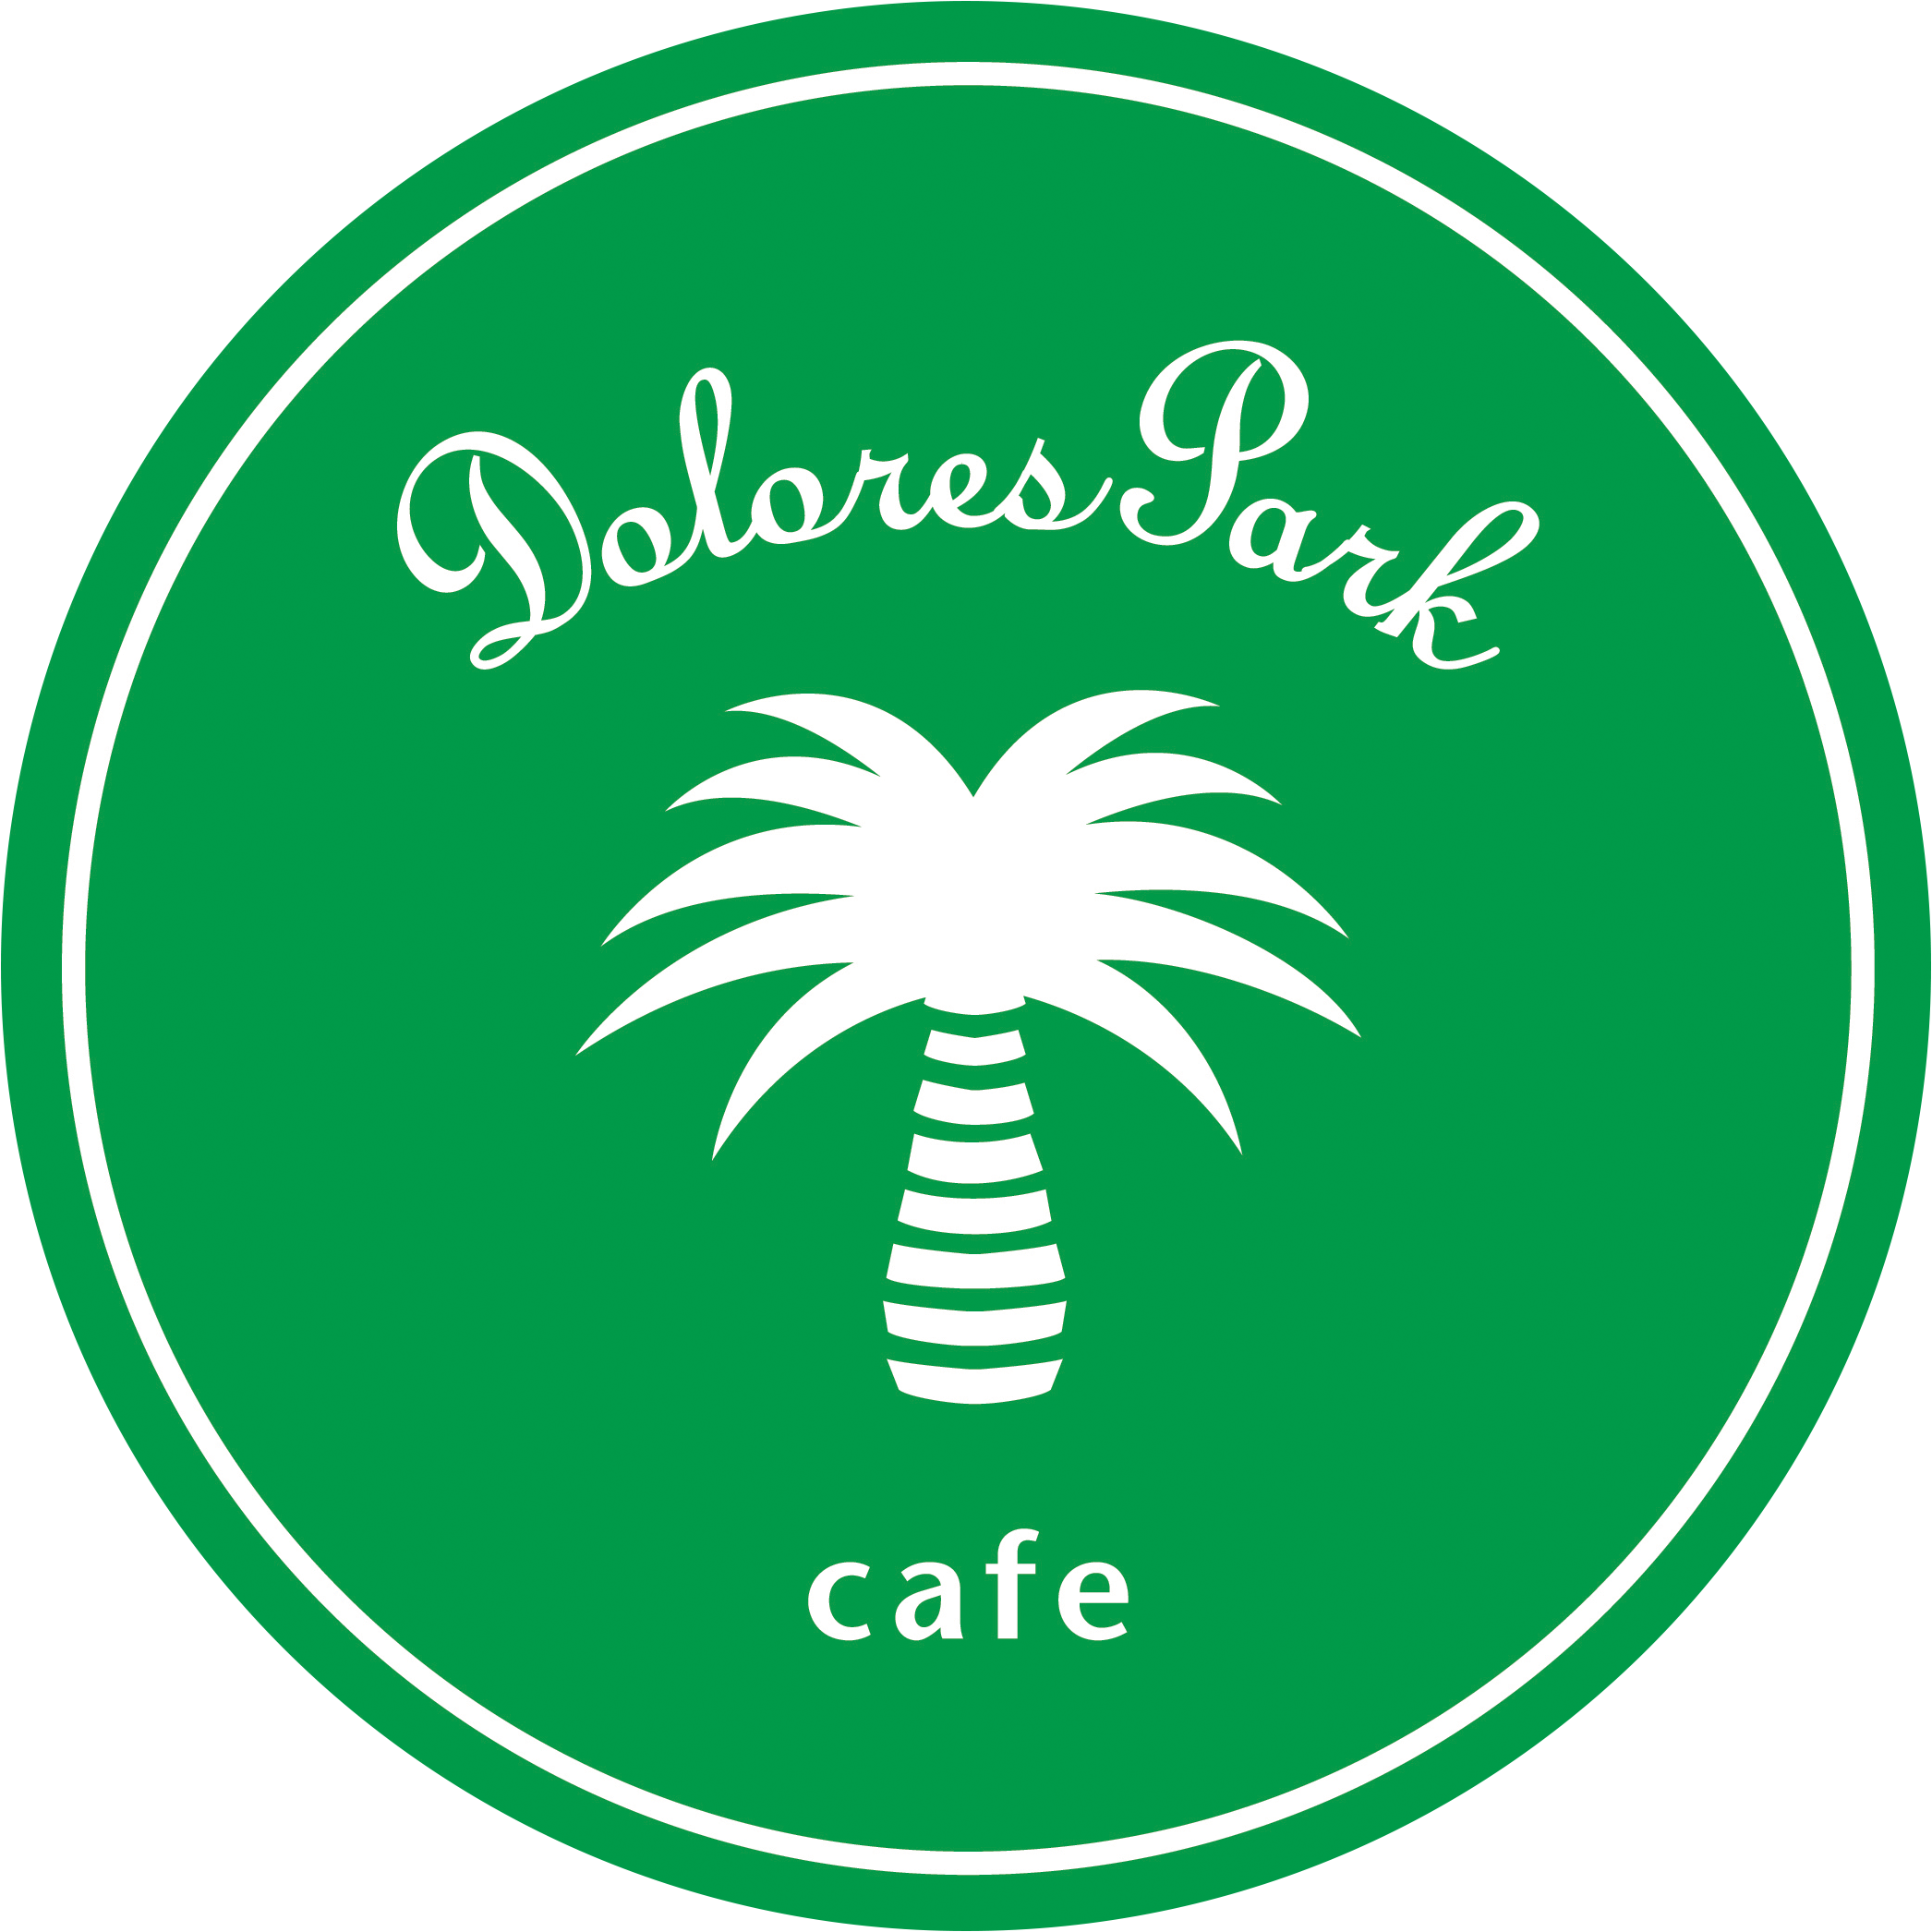 Dolores Park Cafe  2 Sanchez San Francisco, CA  415.621.2936